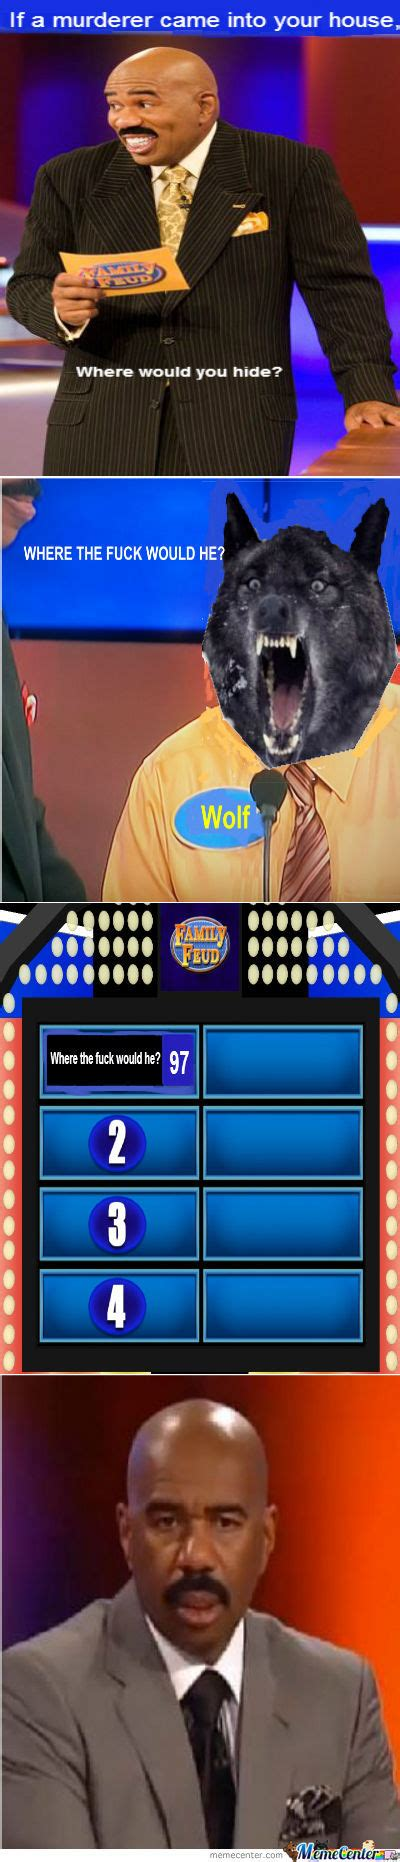 Family Feud Meme - steve harvey memes best collection of funny steve harvey pictures